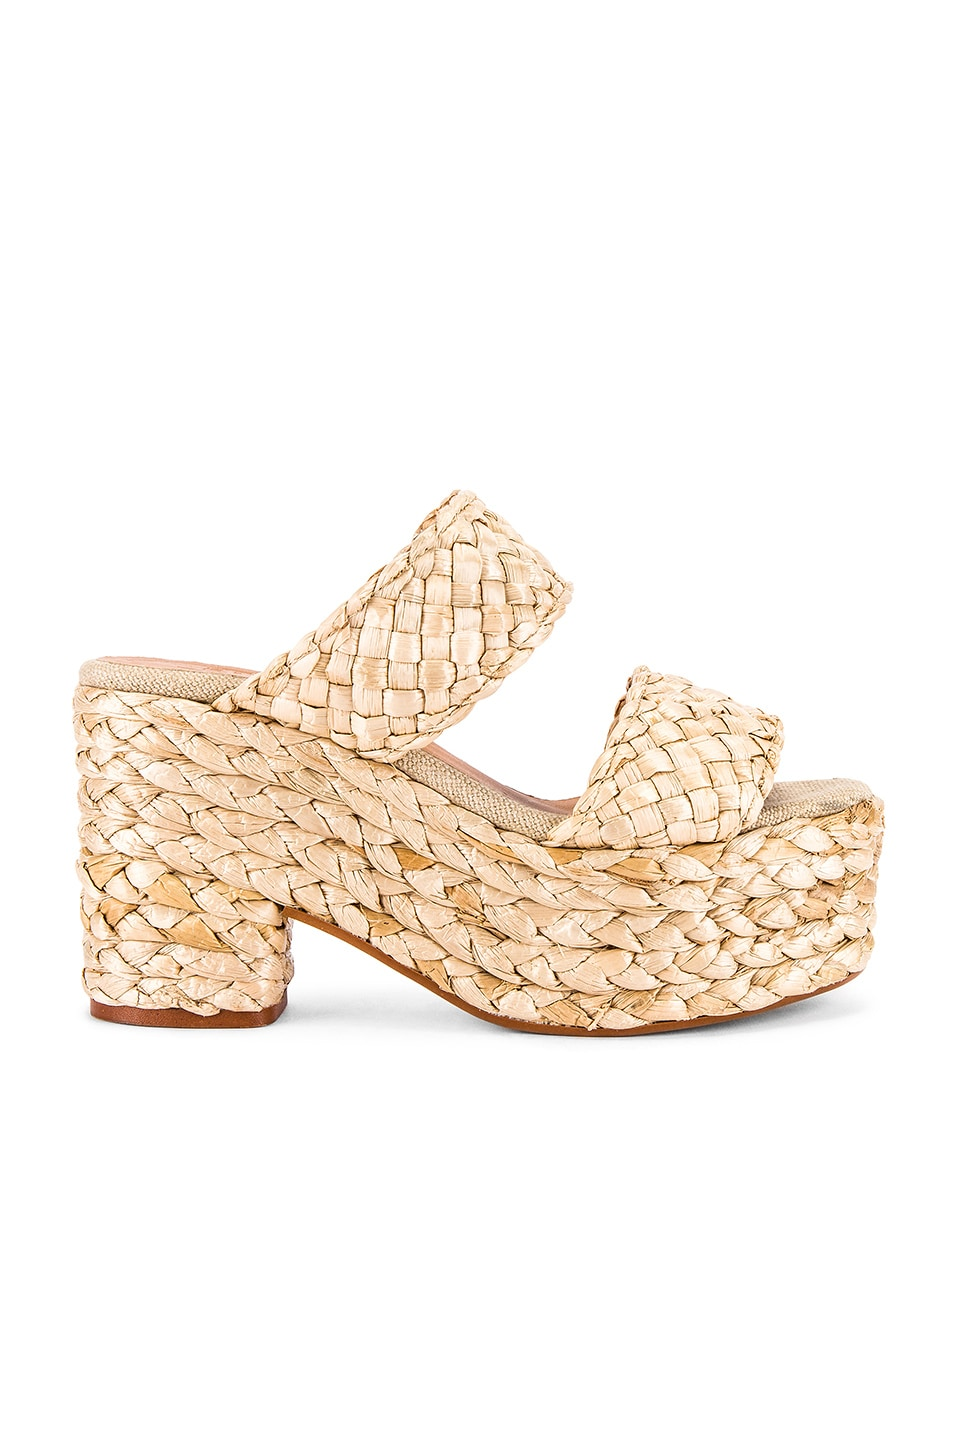 Castaner Xemei Sandal in Natural